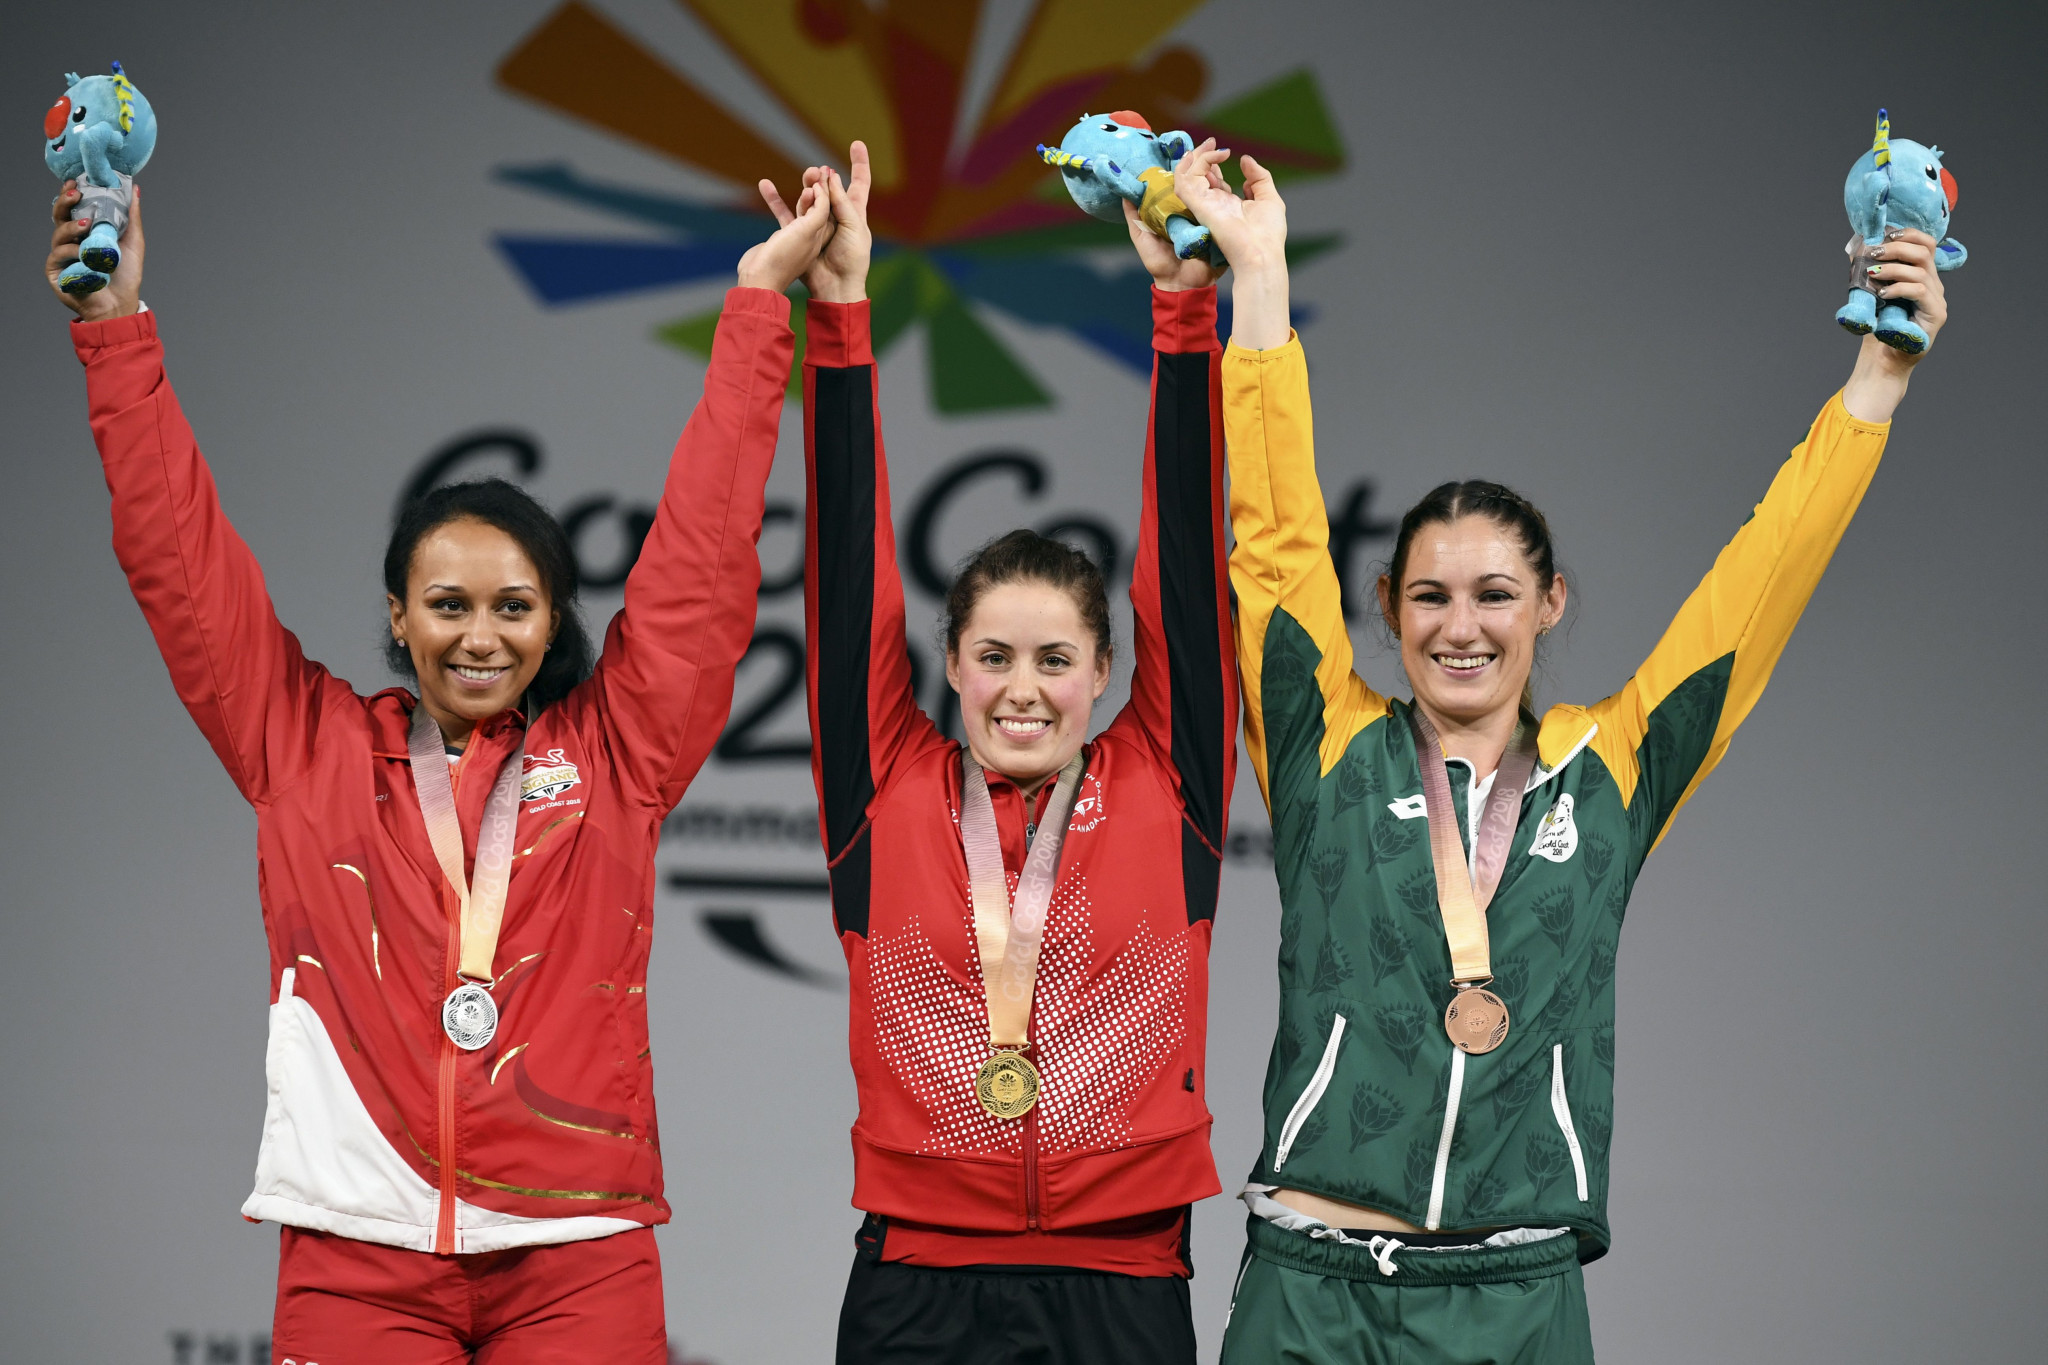 Mona Pretorius, right, is a Commonwealth Games bronze medallist ©Getty Images